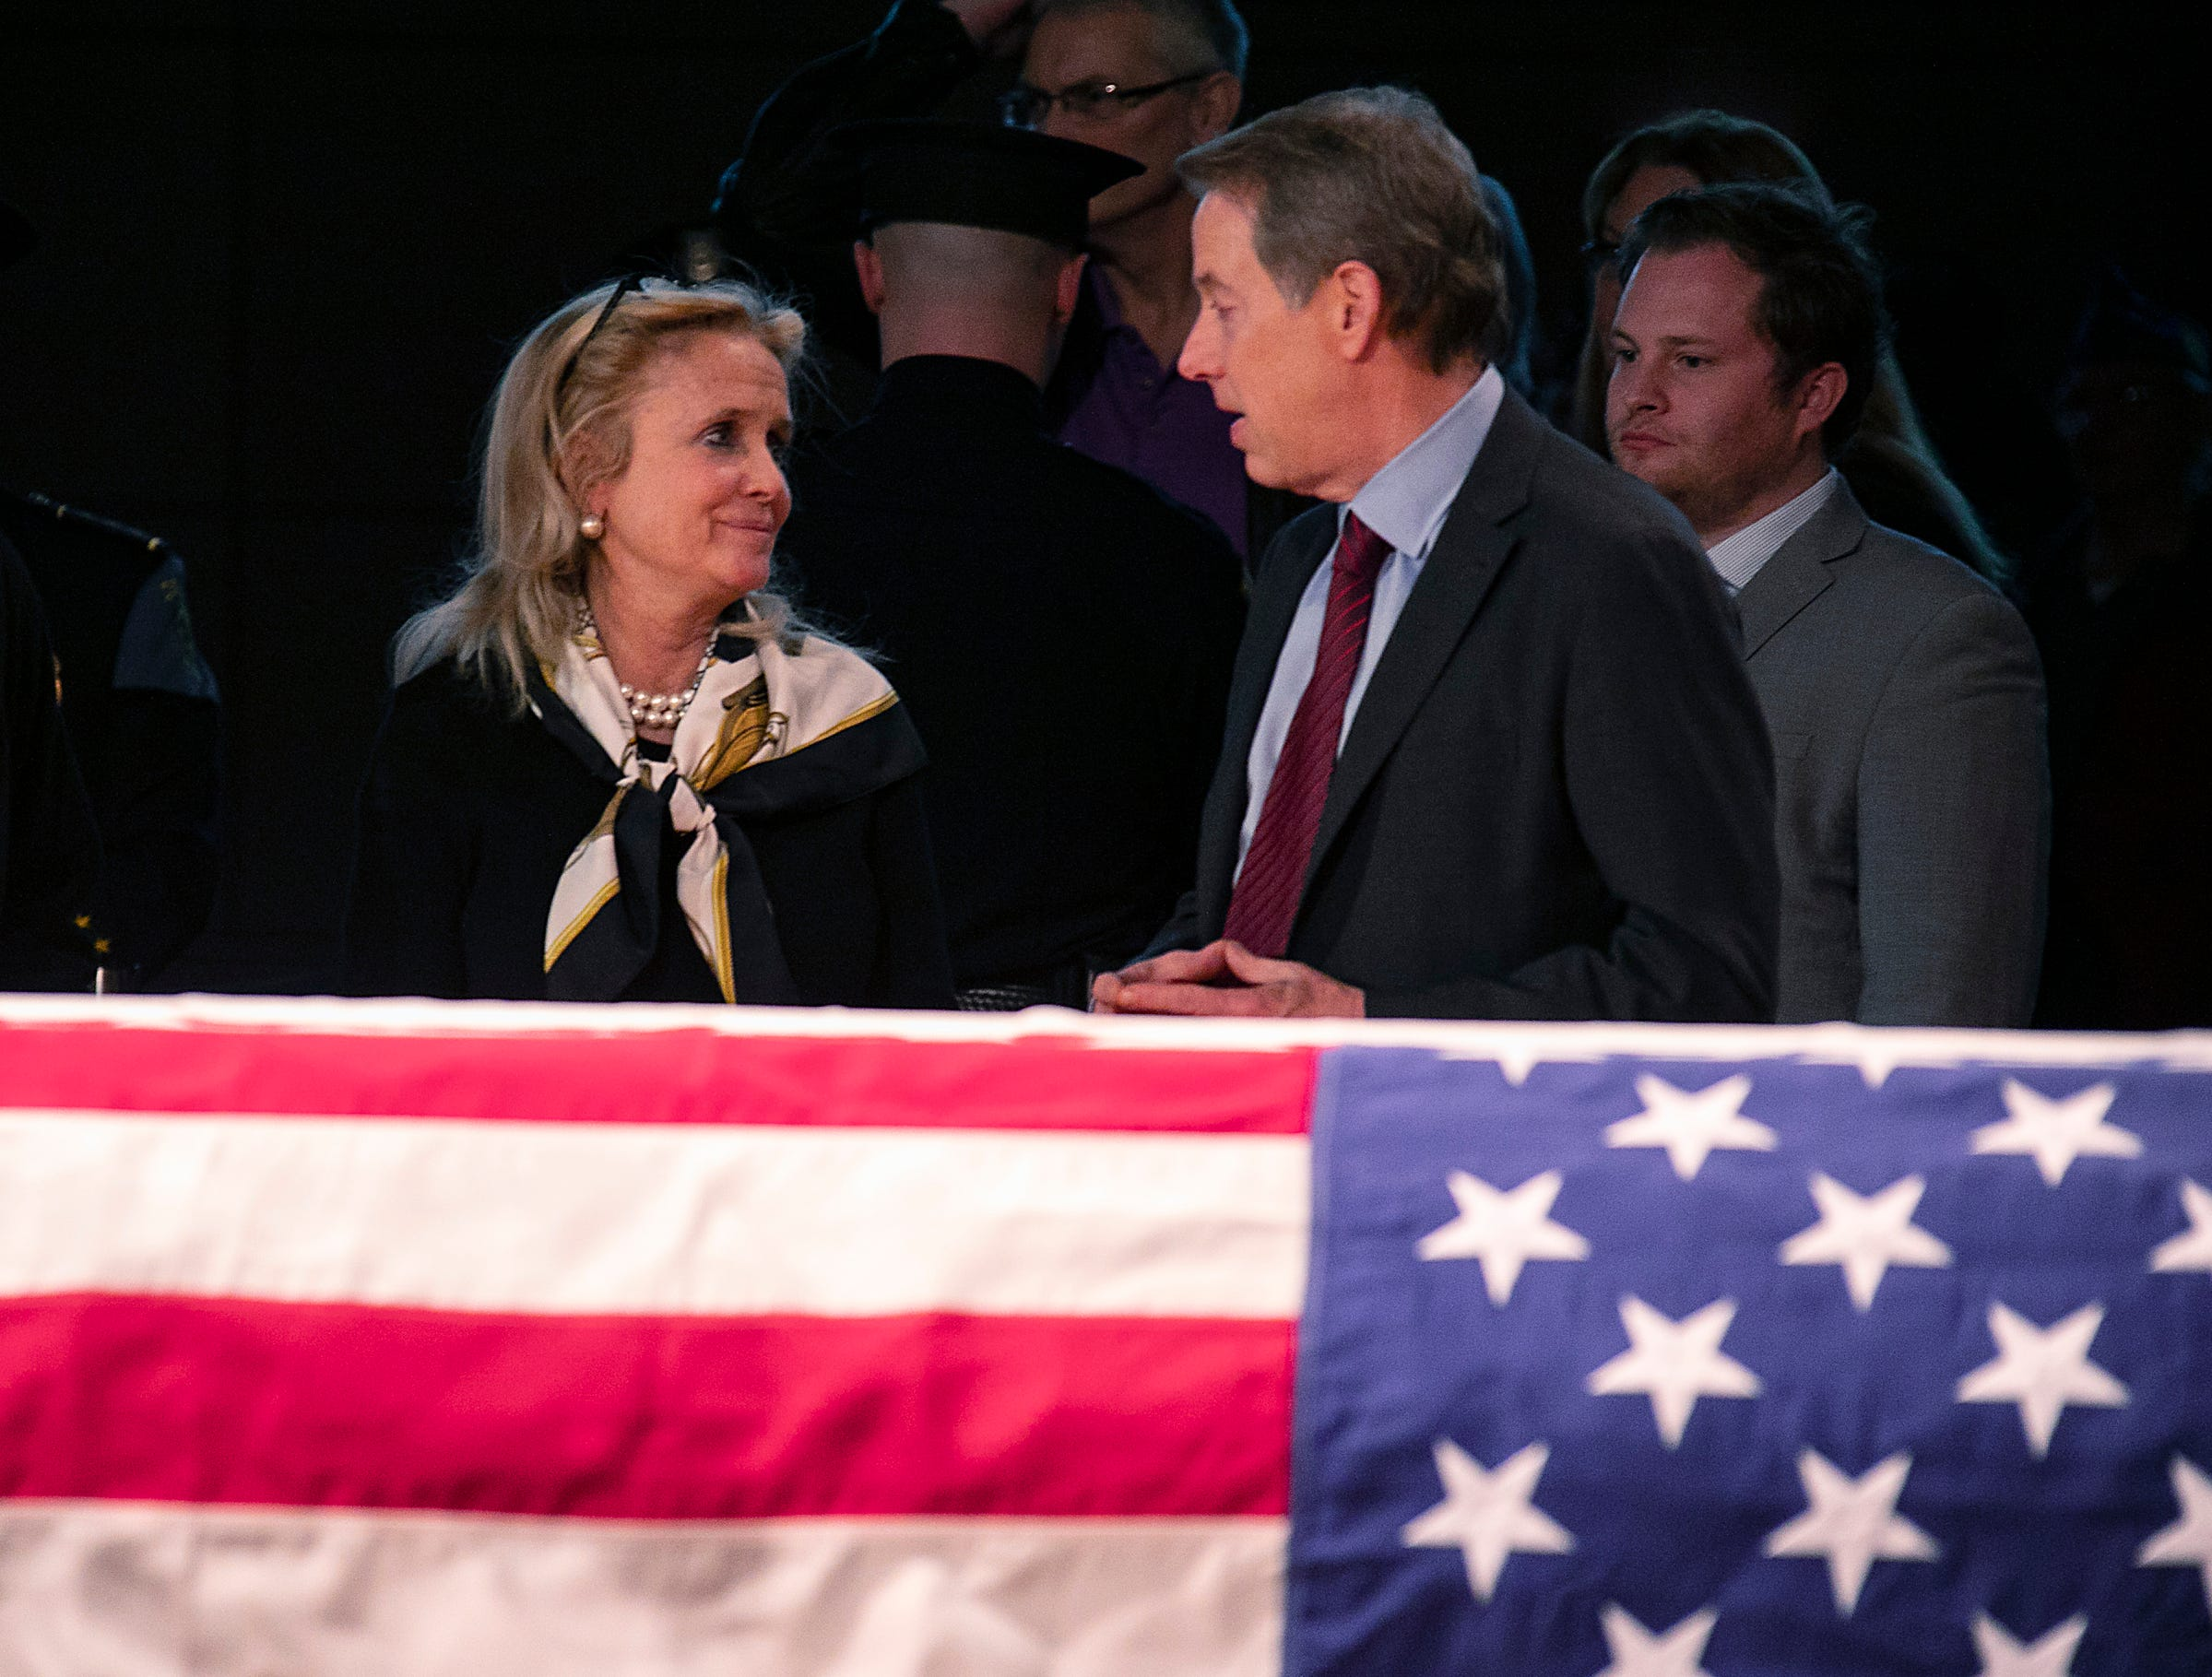 Congresswoman Debbie Dingell greets Bill Ford Jr. as visitors stream by to pay their respects to her husband, John Dingell, during visitation at the Michael A. Guido theater in Dearborn Monday, Feb. 11, 2019.